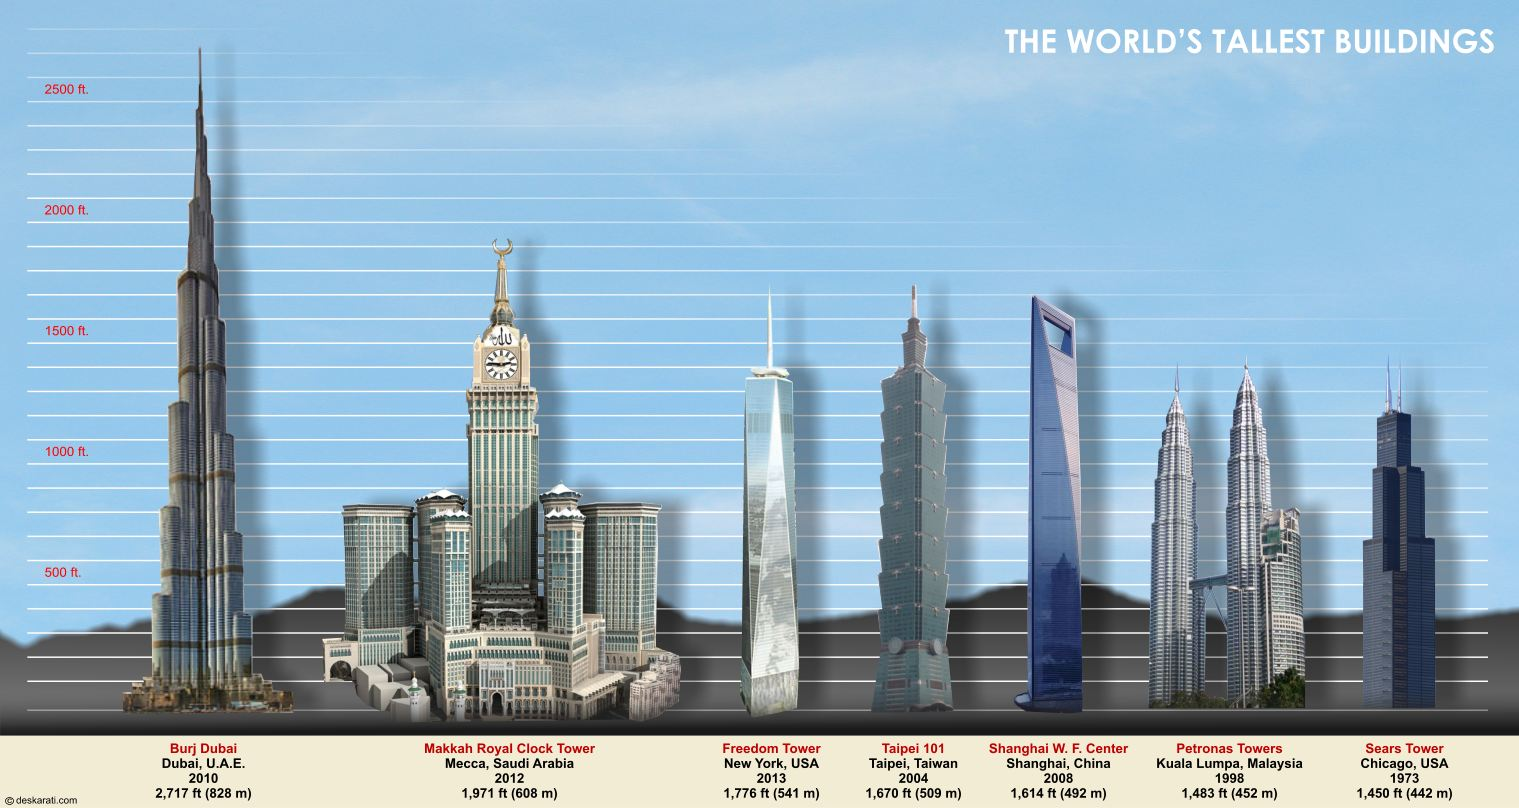 Top 10 tallest buildings in the world.